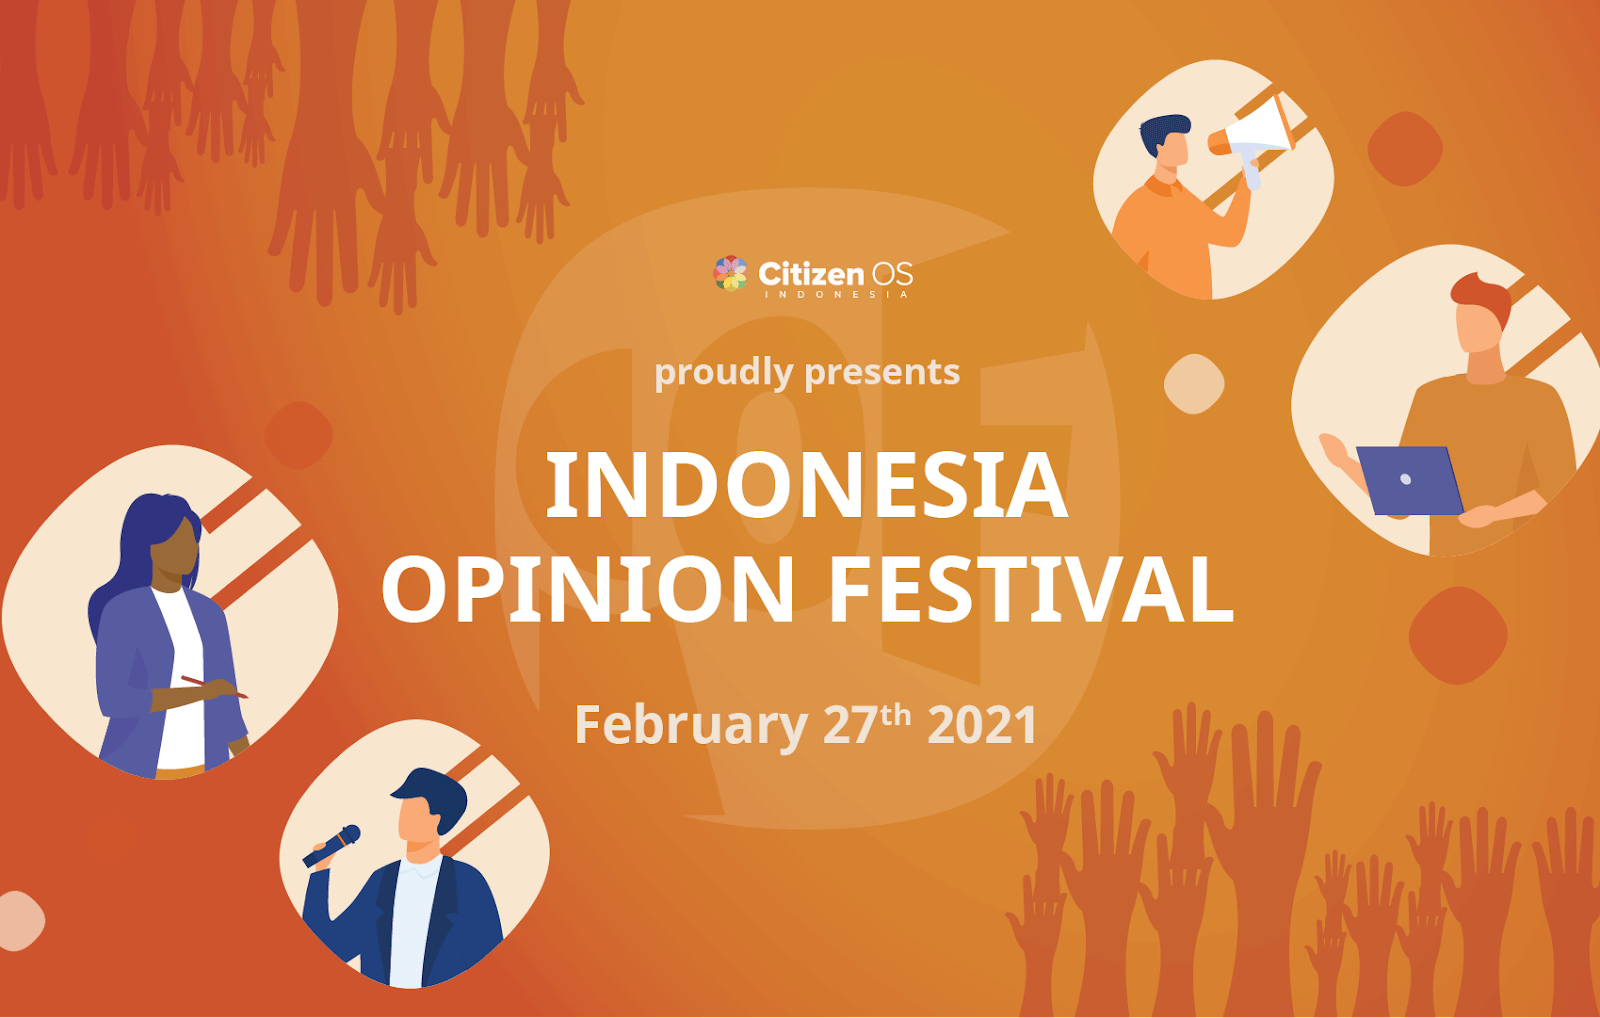 Poster of computer drawings of four people in different actions of expressing their opinions and the following text: Citizen OS Indonesia proudly presents Indonesia Opinion Festival February 27th, 2021.